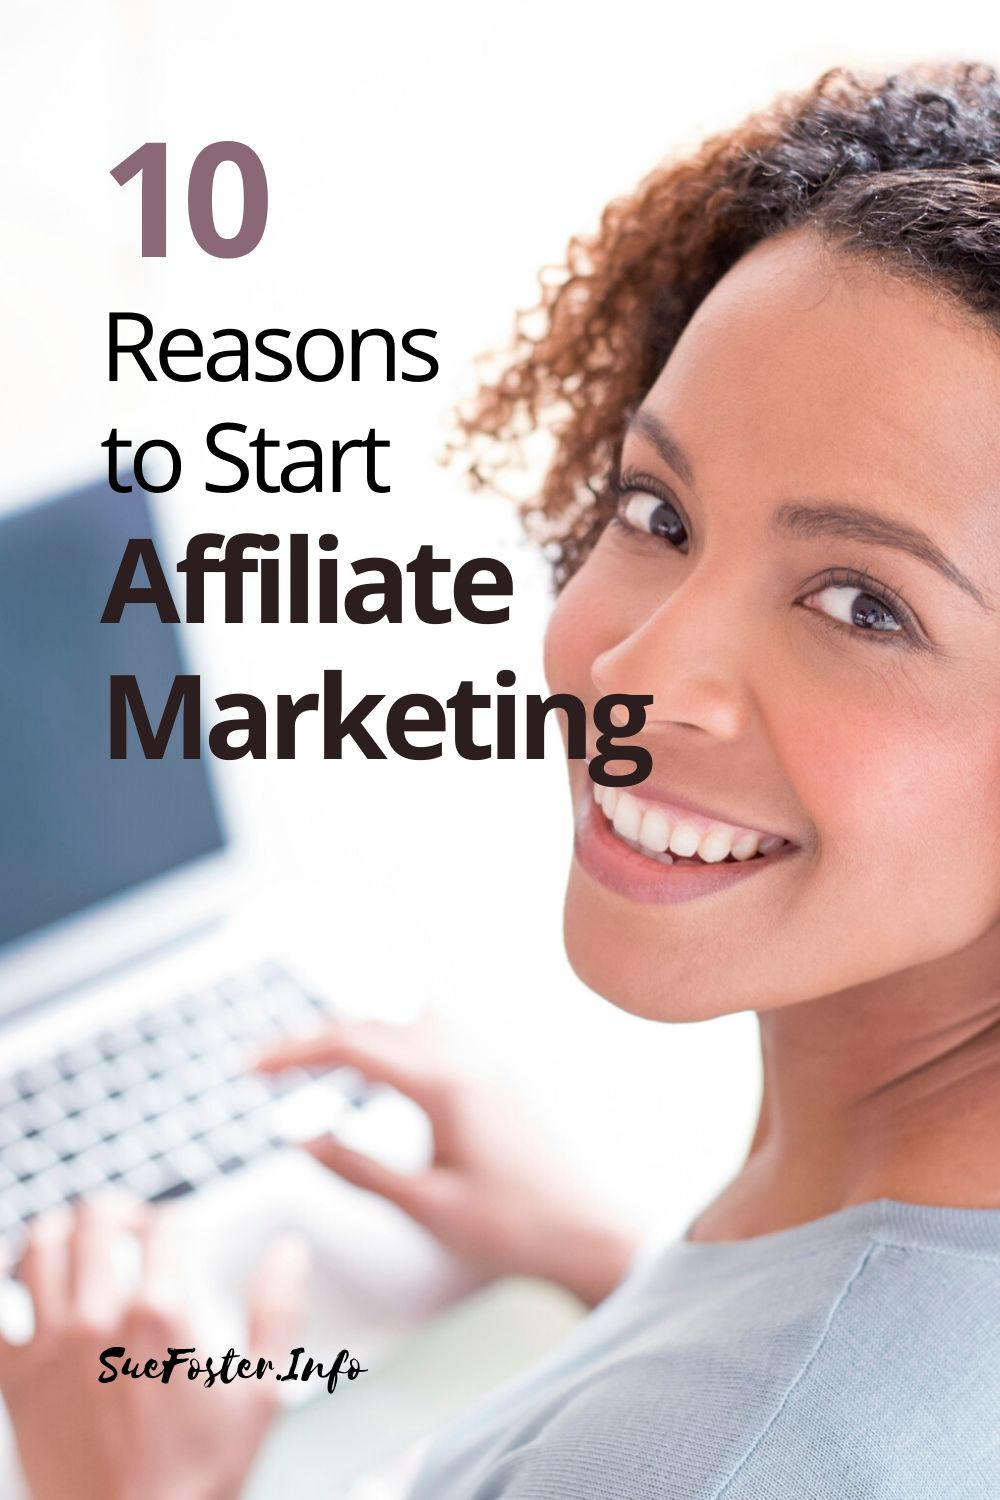 10 Reasons to Start Affiliate Marketing.